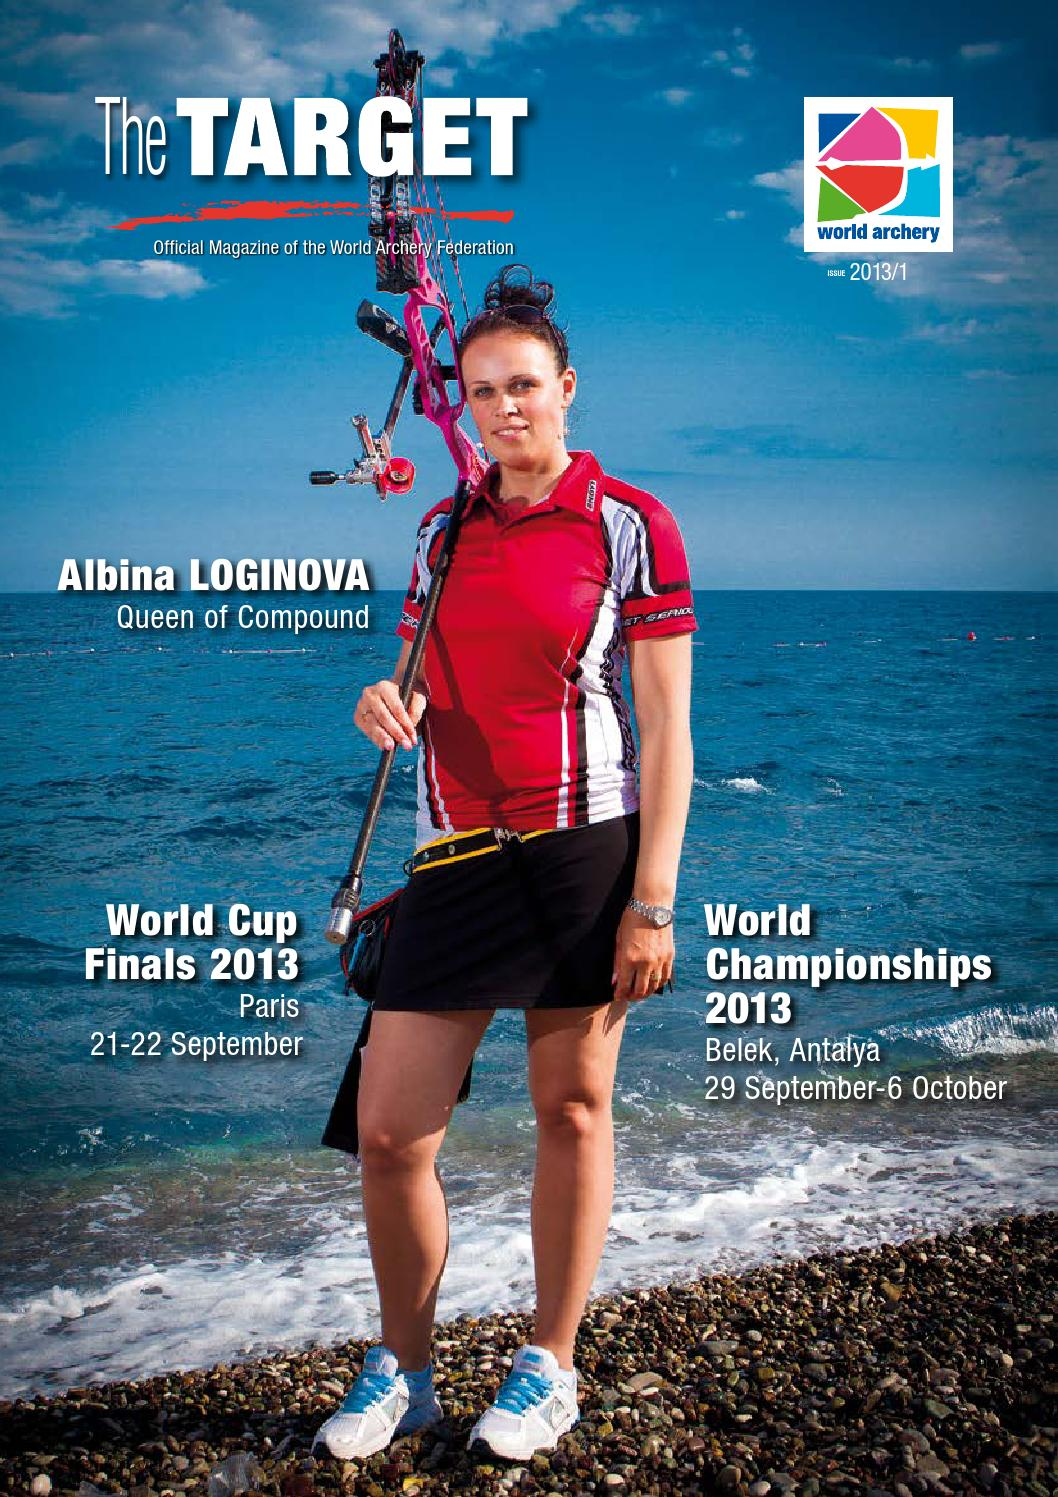 The Target Summer 2013 By World Archery Issuu Jacobs Electronics Wiring Diagram Hecho